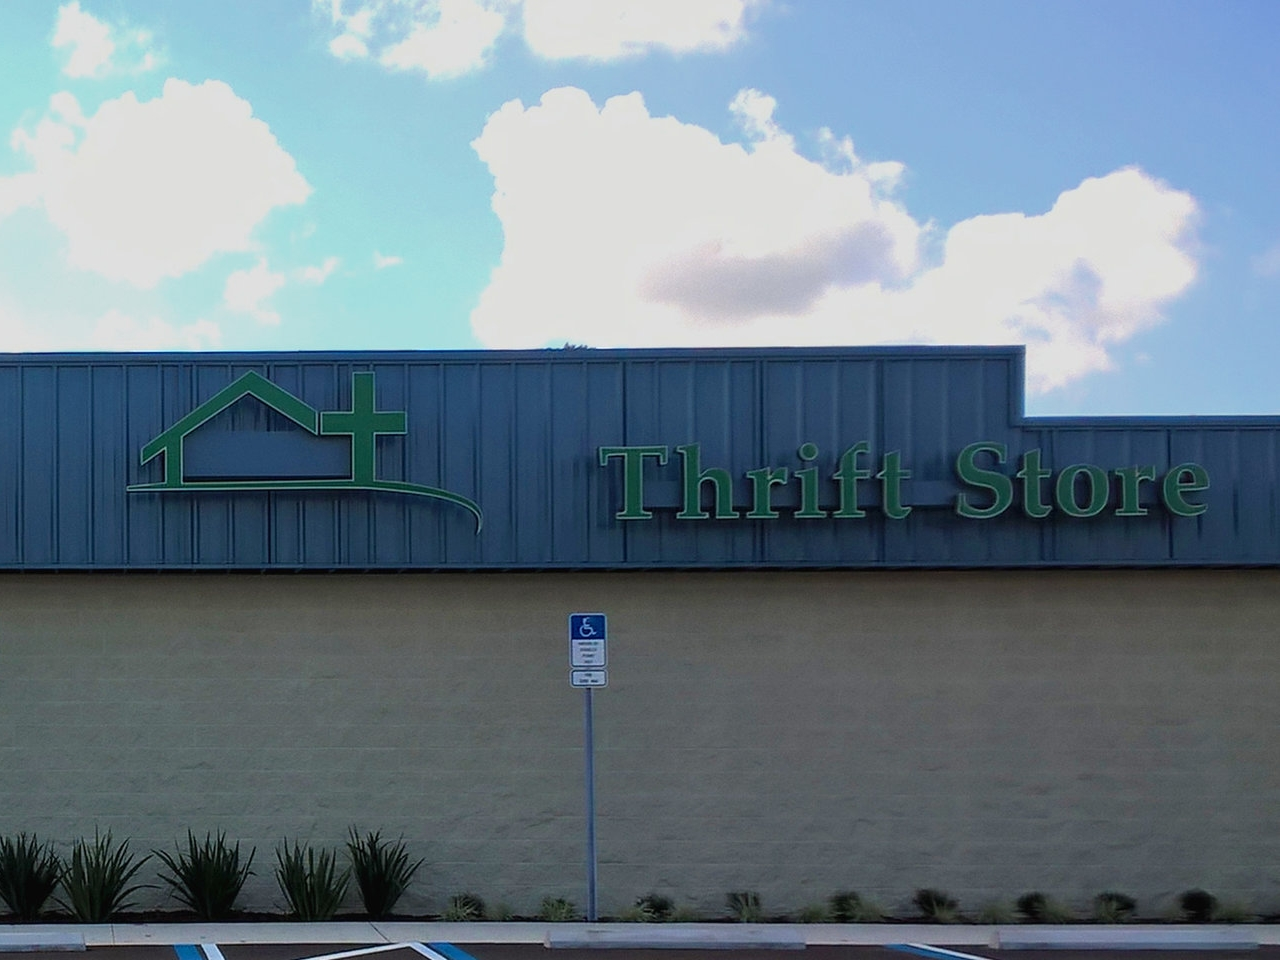 Opening Soon: New Jericho Thrift Store - Our newest, 8,000 sq. ft. thrift store is slated for opening during in early 2019. Located at the corner of Ackson St. and County Line Road, across from Springleton Fun Park, the store will feature a wide selection of clothing, home goods, books and more!